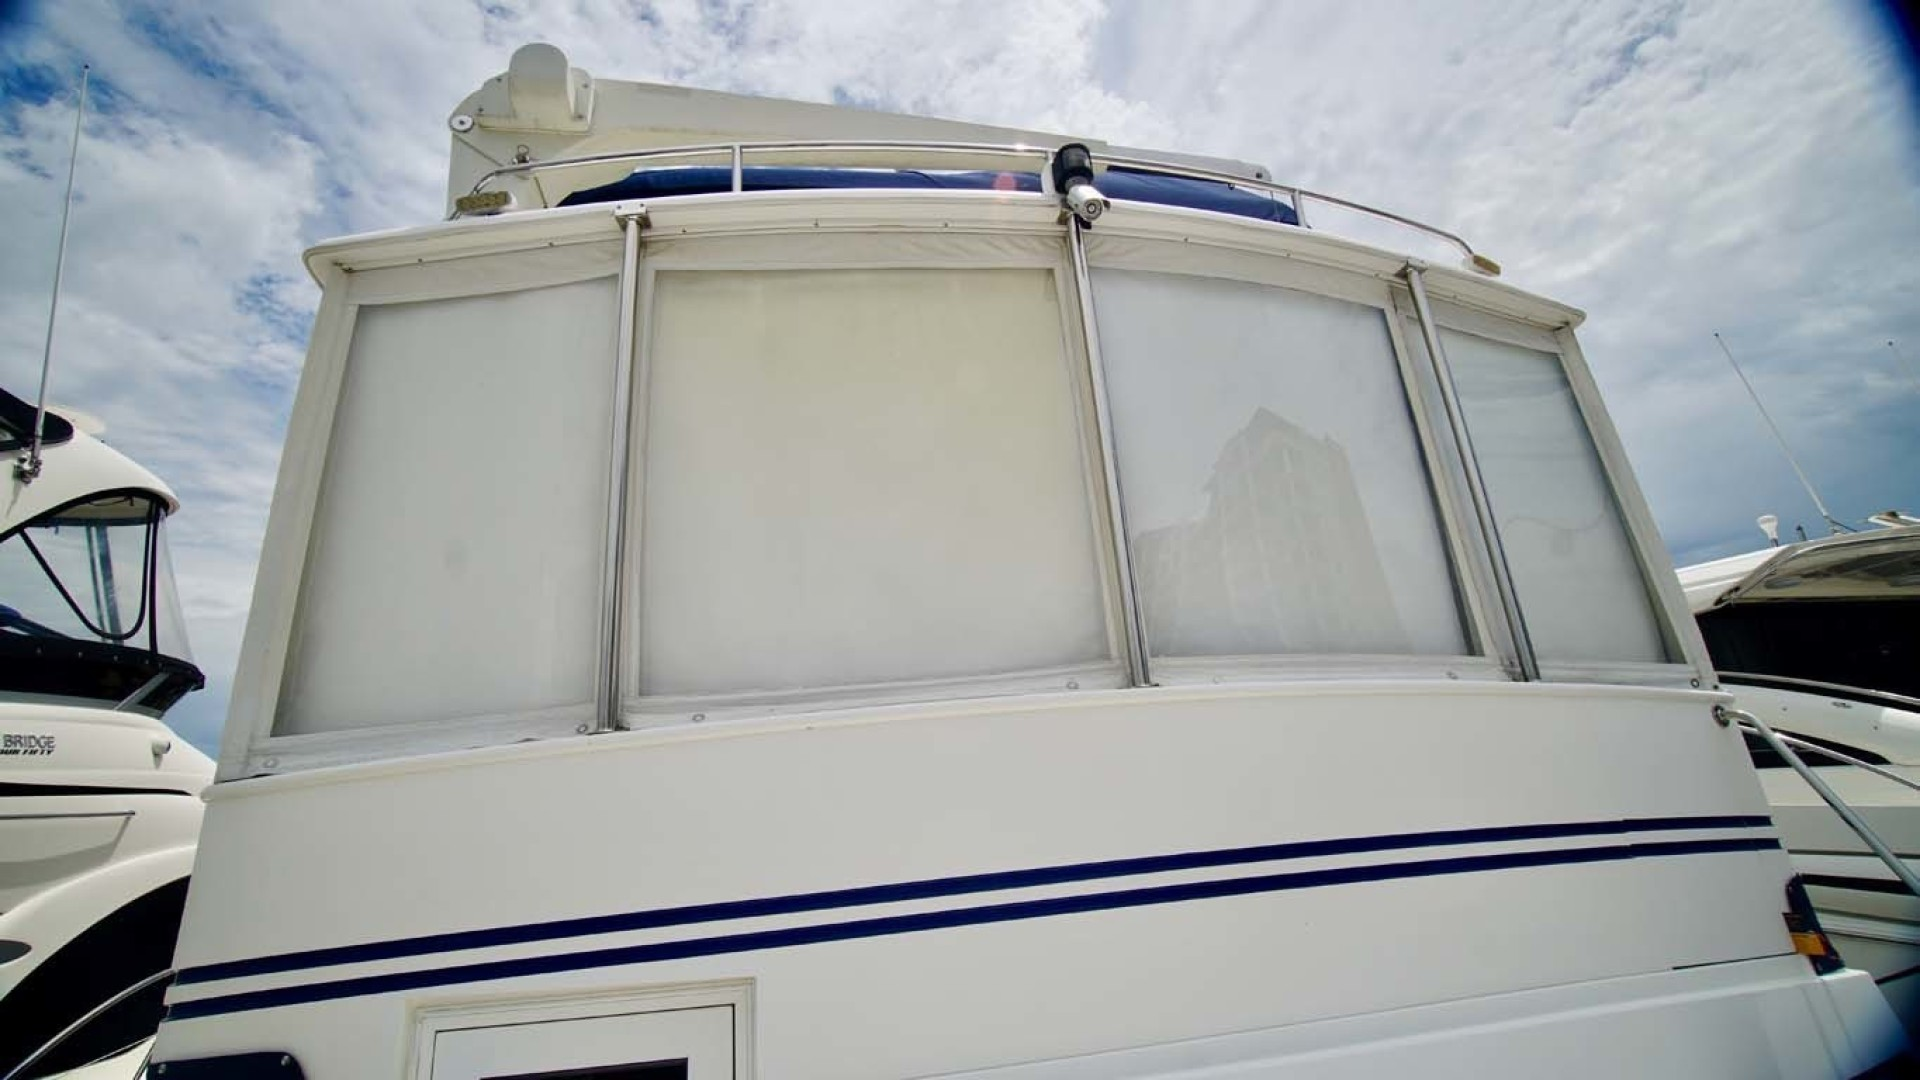 Novatec-48 Fast Trawler 2003-SINE DIE II Destin-Florida-United States-Aft Sun Deck Windows-1360647 | Thumbnail